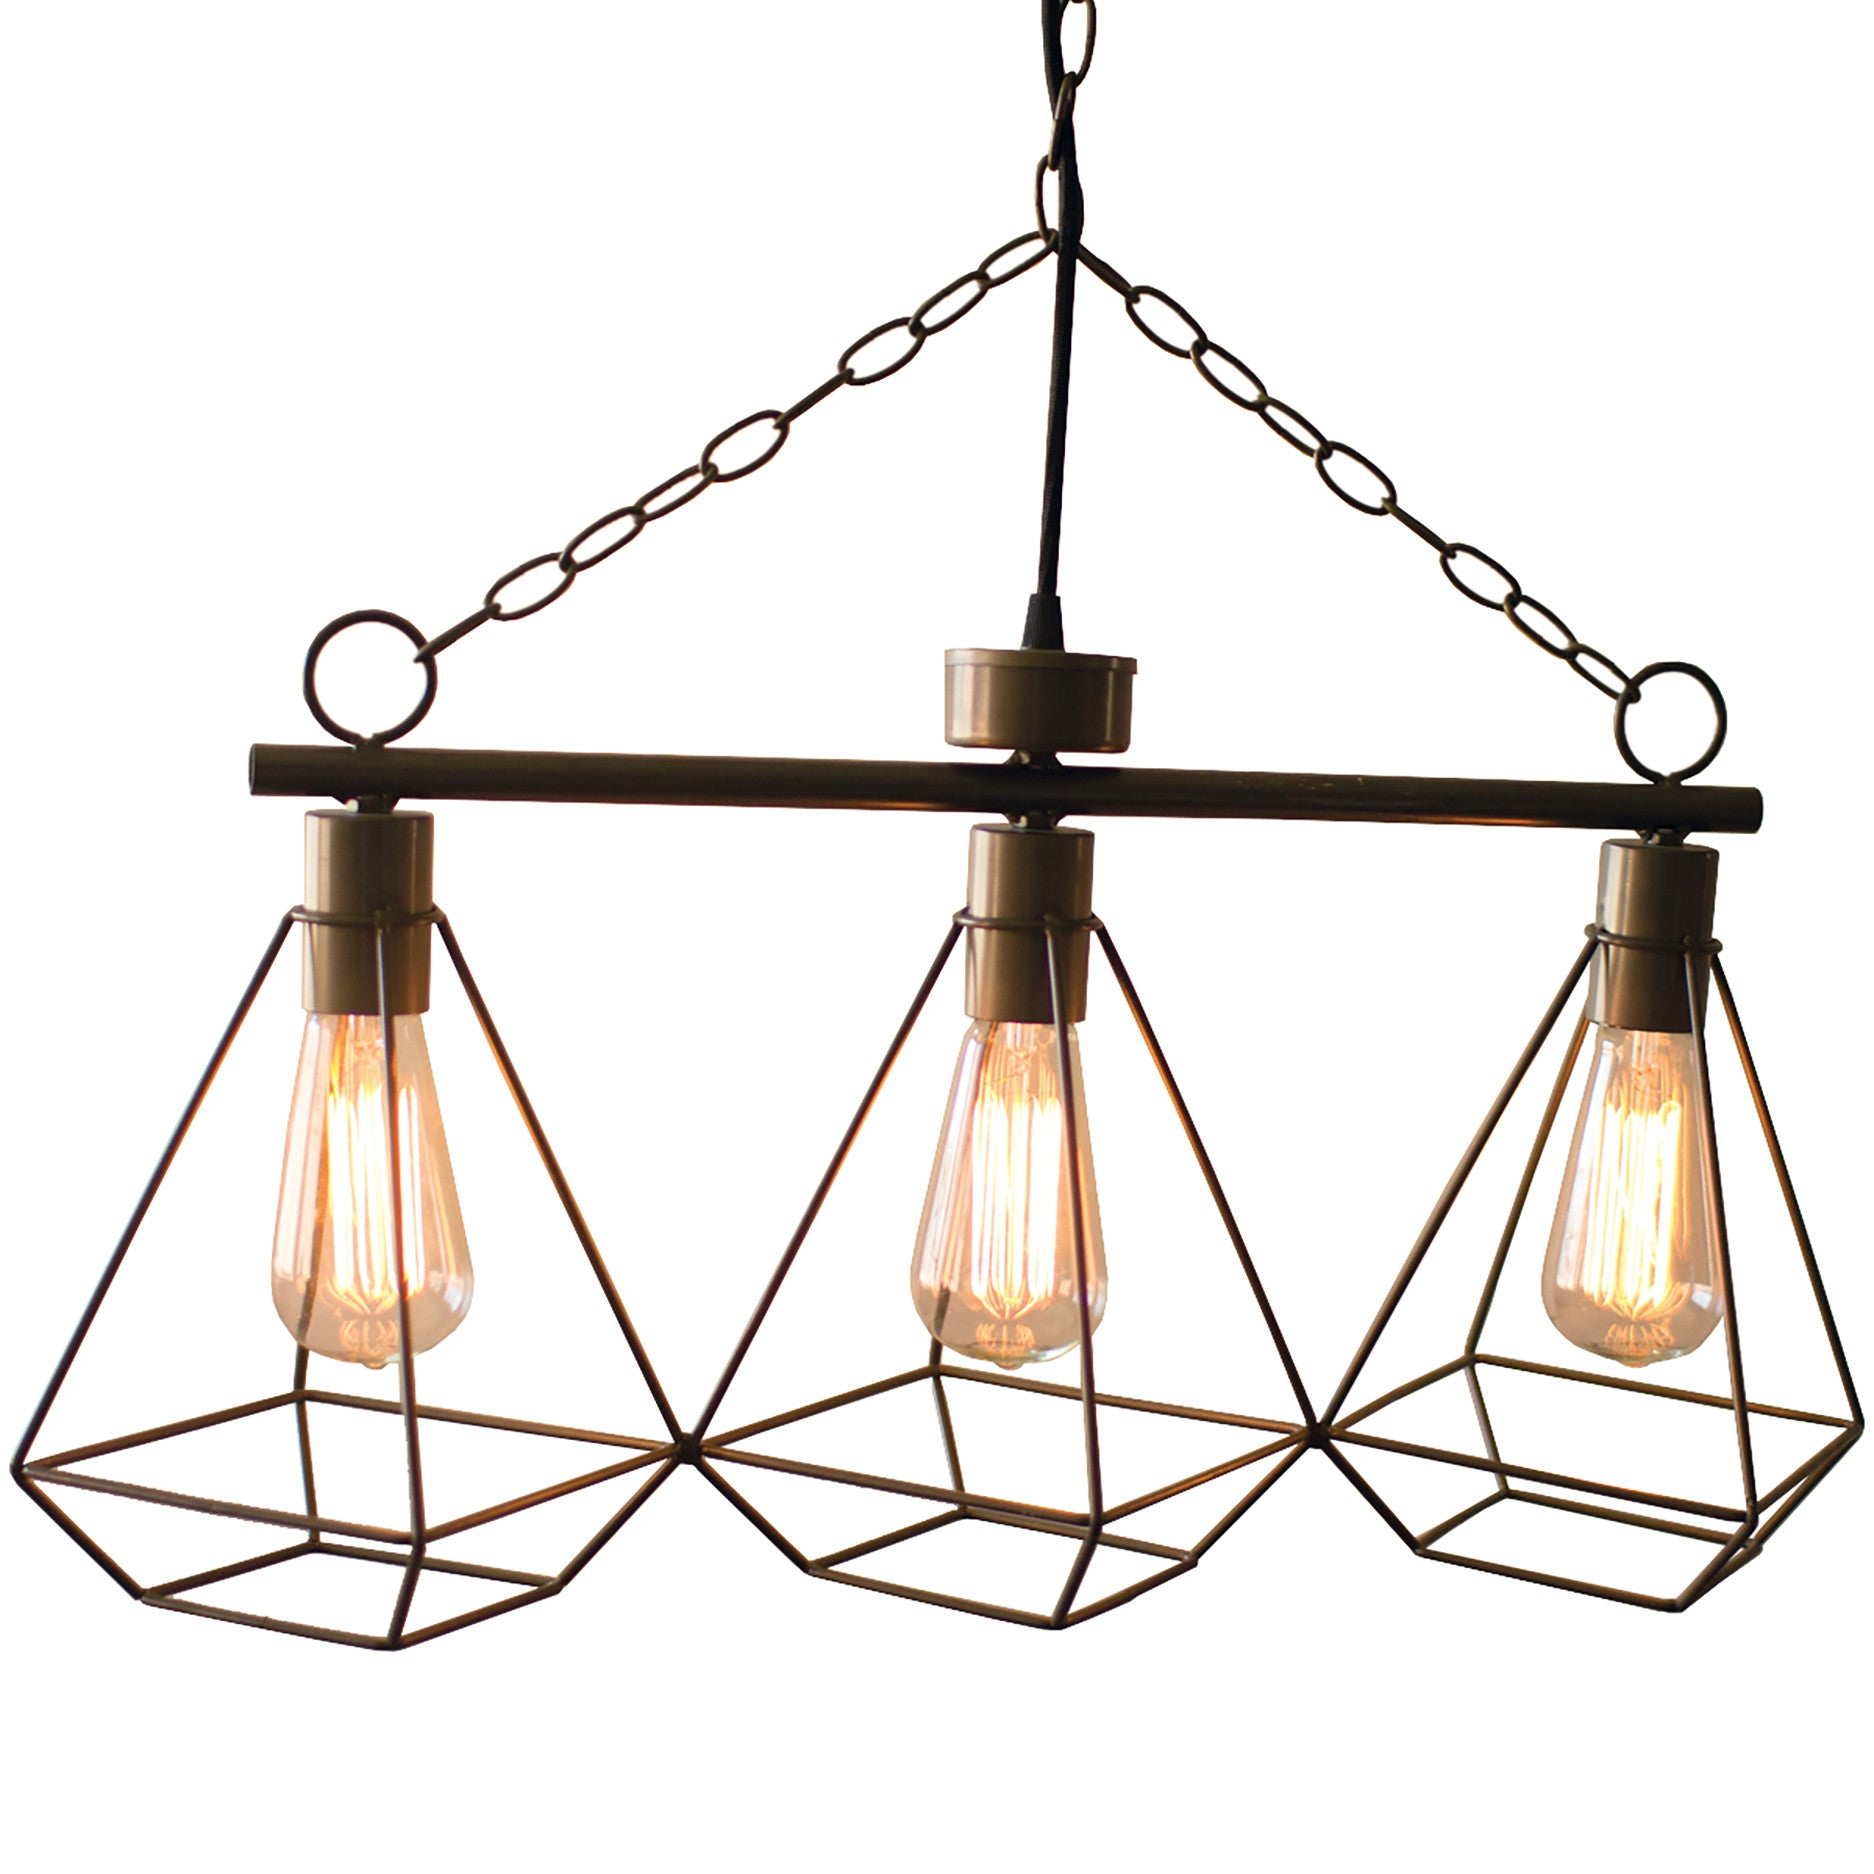 Industrial Modern Three Light Geometric Pendant Chandelier